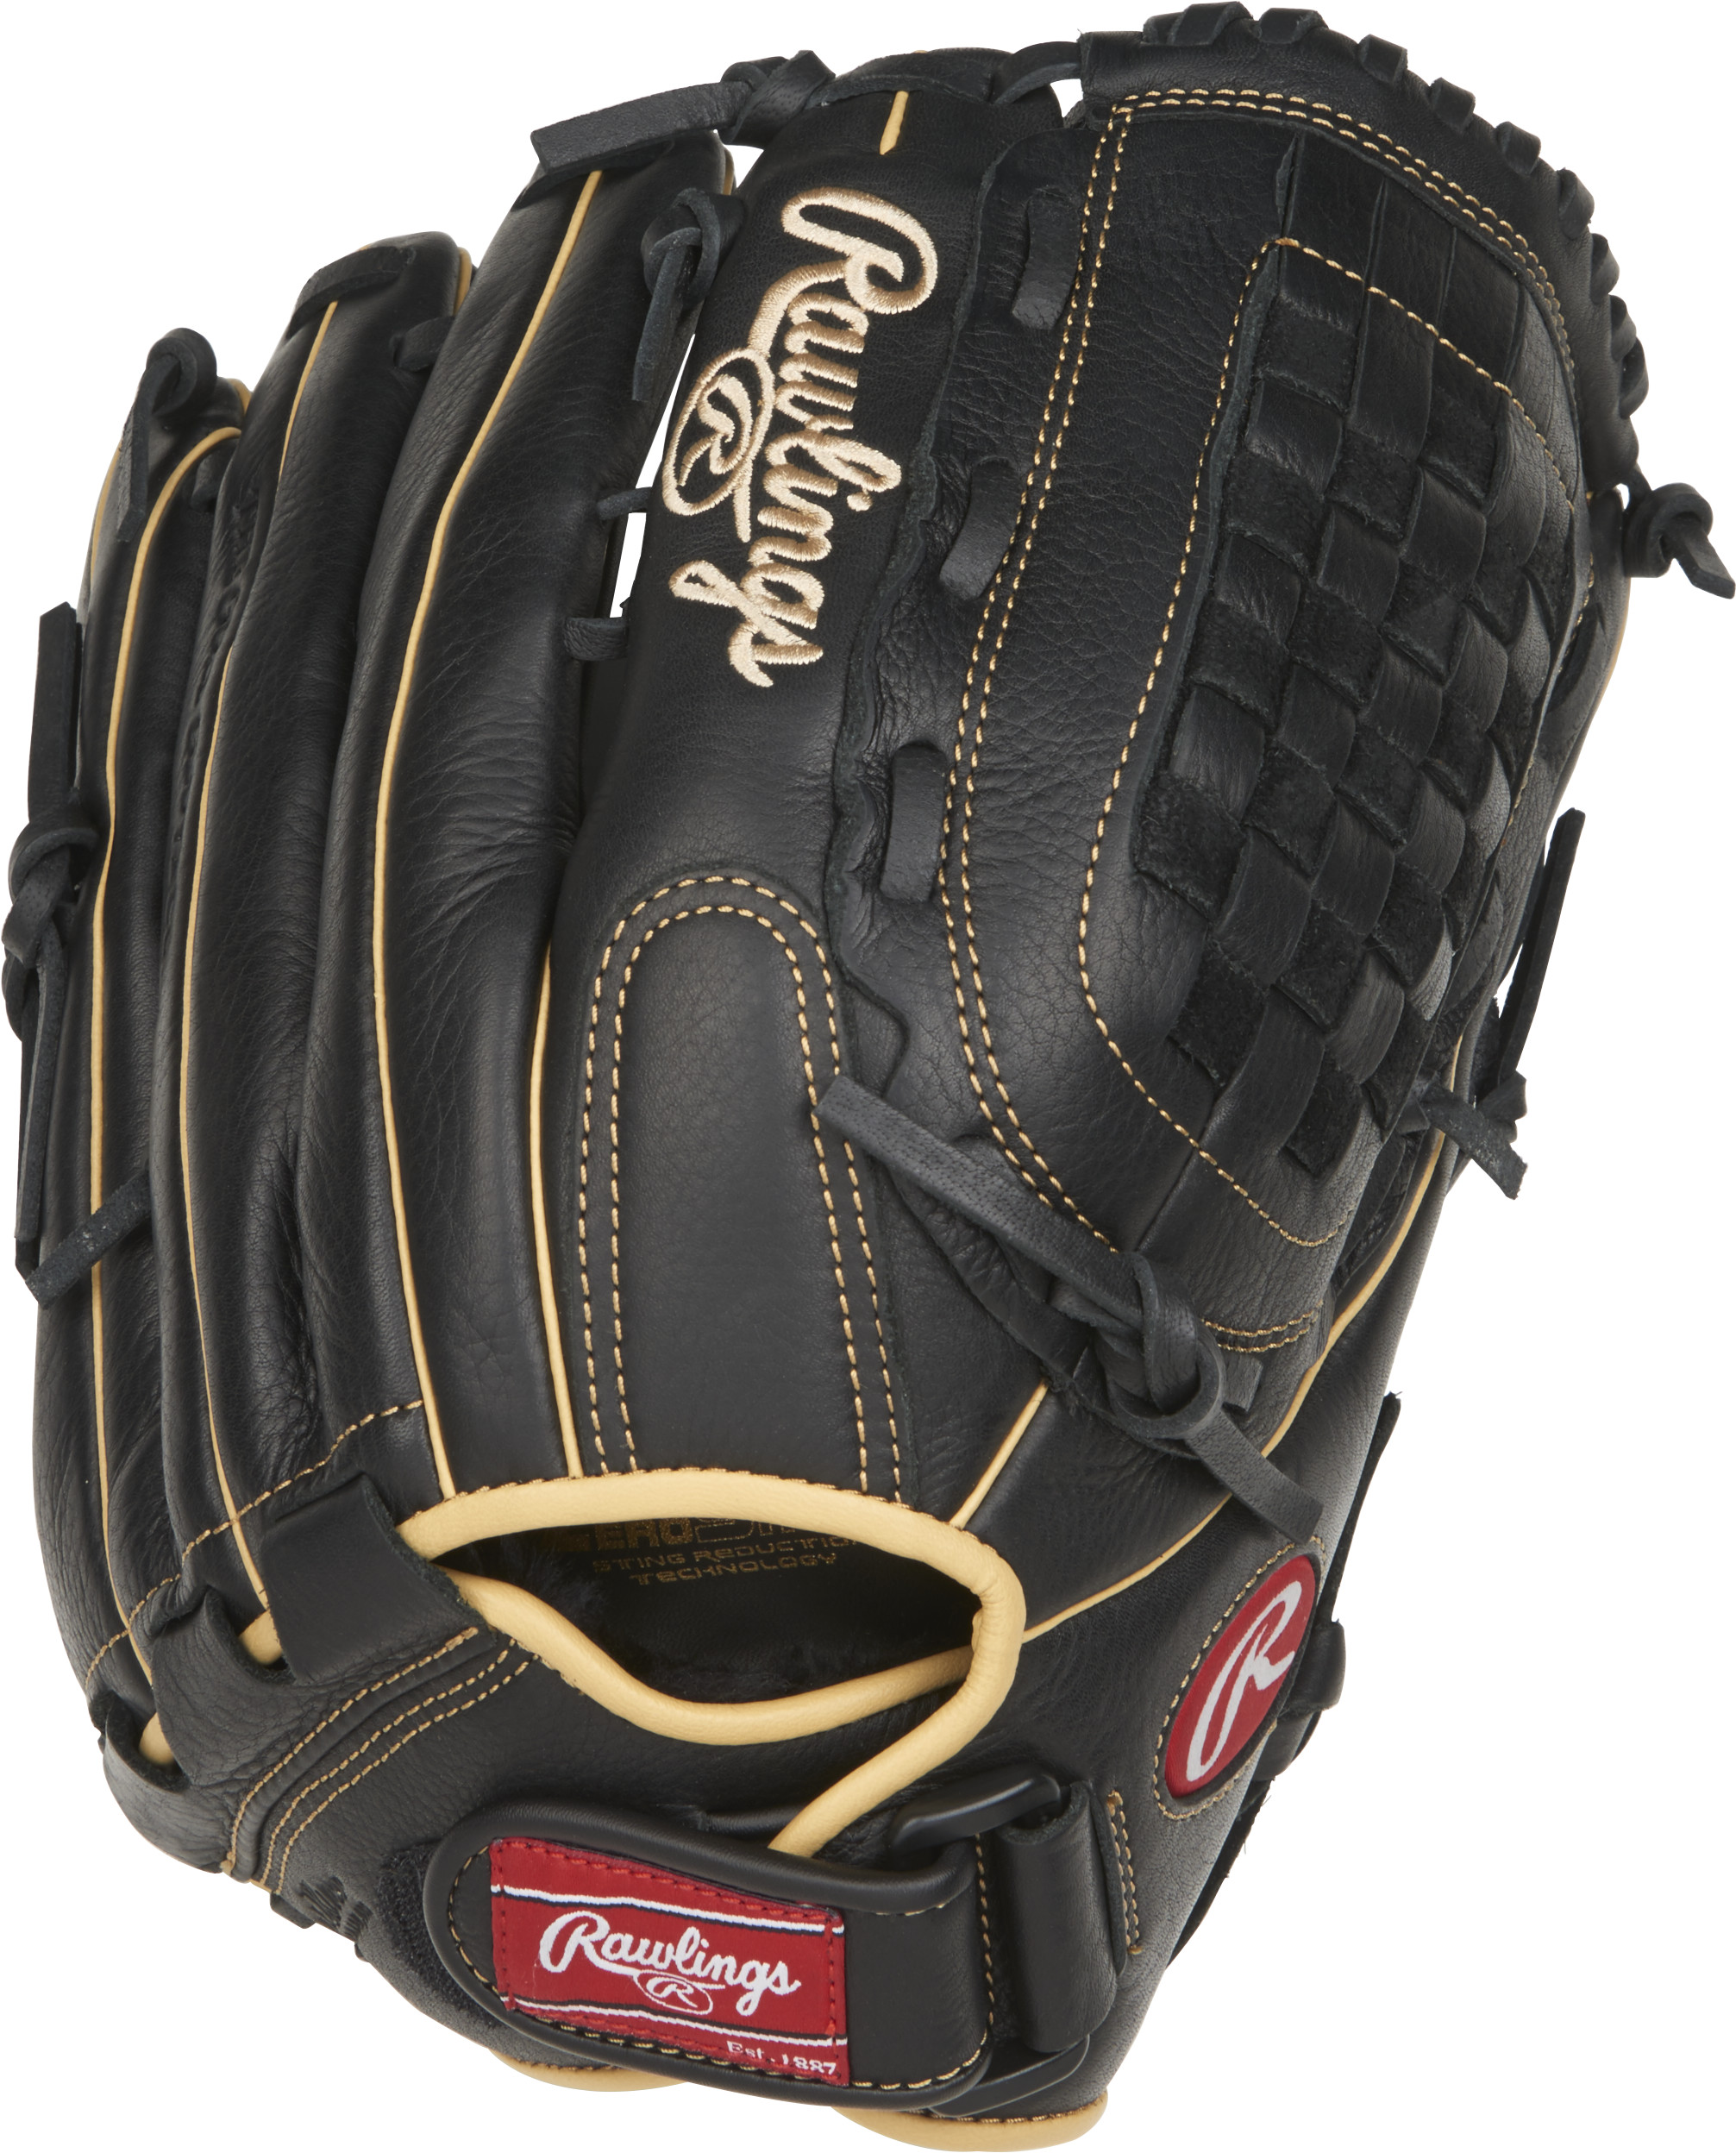 http://www.bestbatdeals.com/images/gloves/rawlings/RSO130BCC-2.jpg